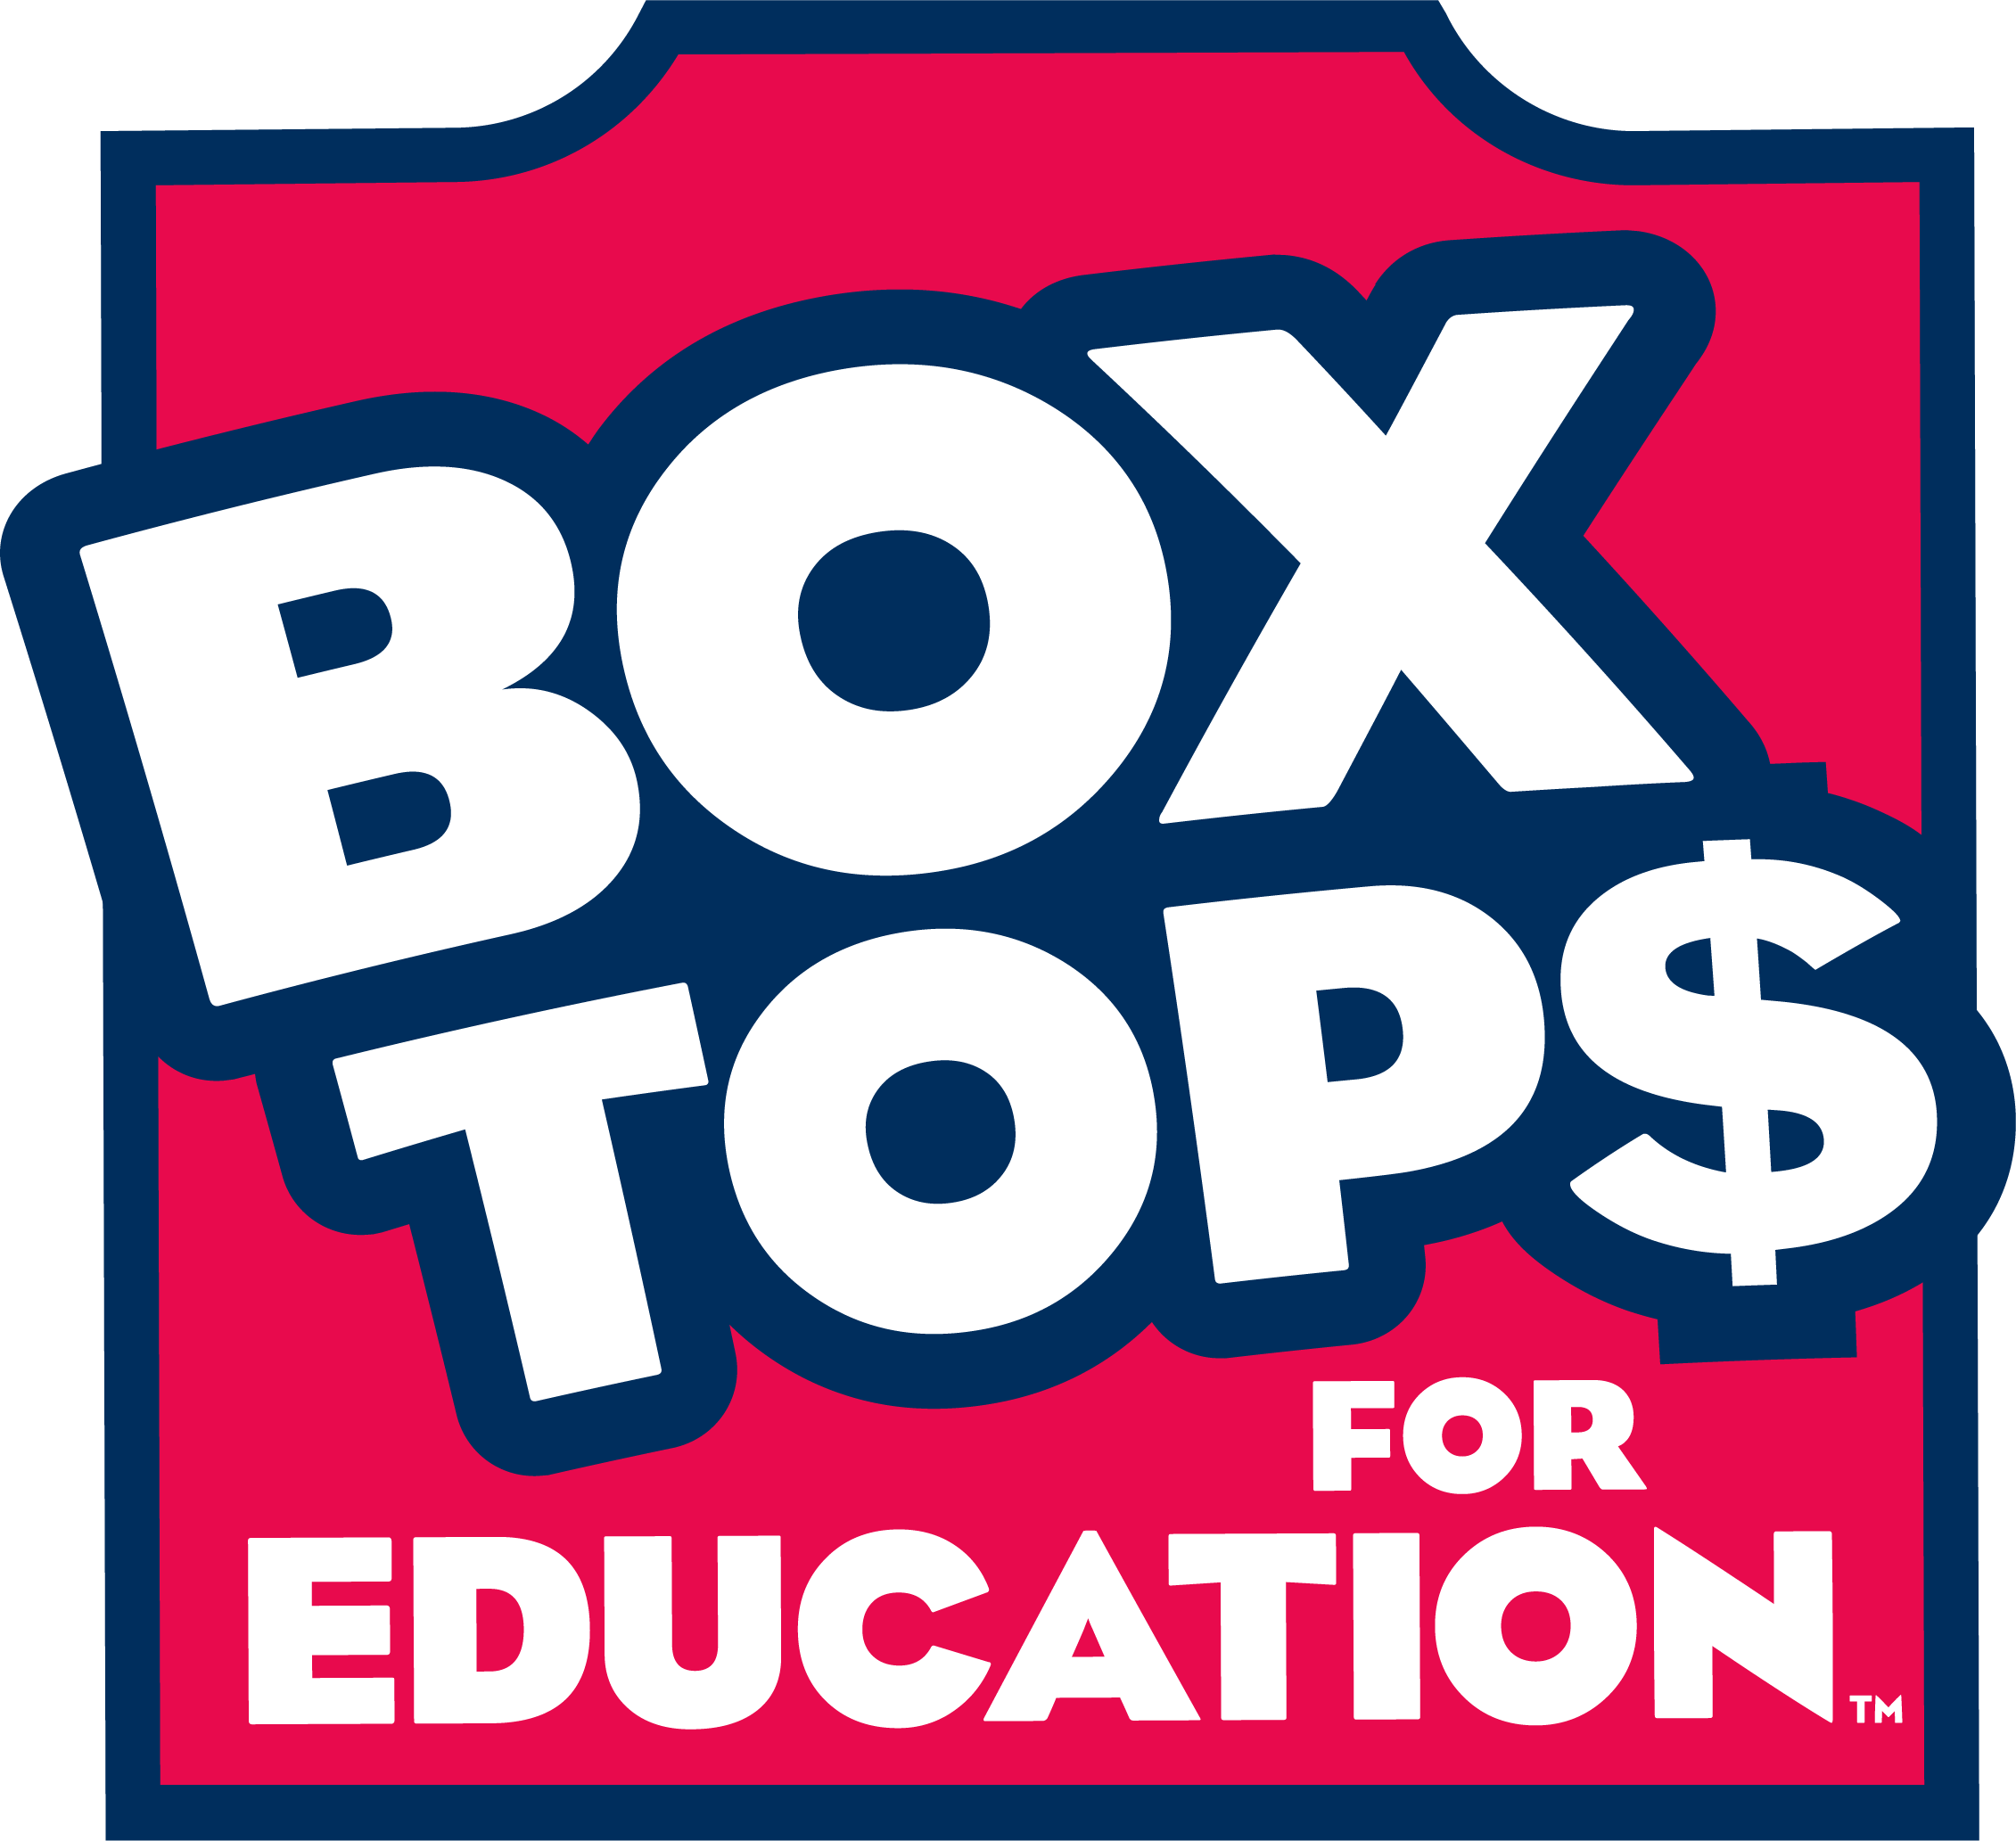 Box tops 4 education clipart royalty free download Home - BoxTops for Your Education royalty free download